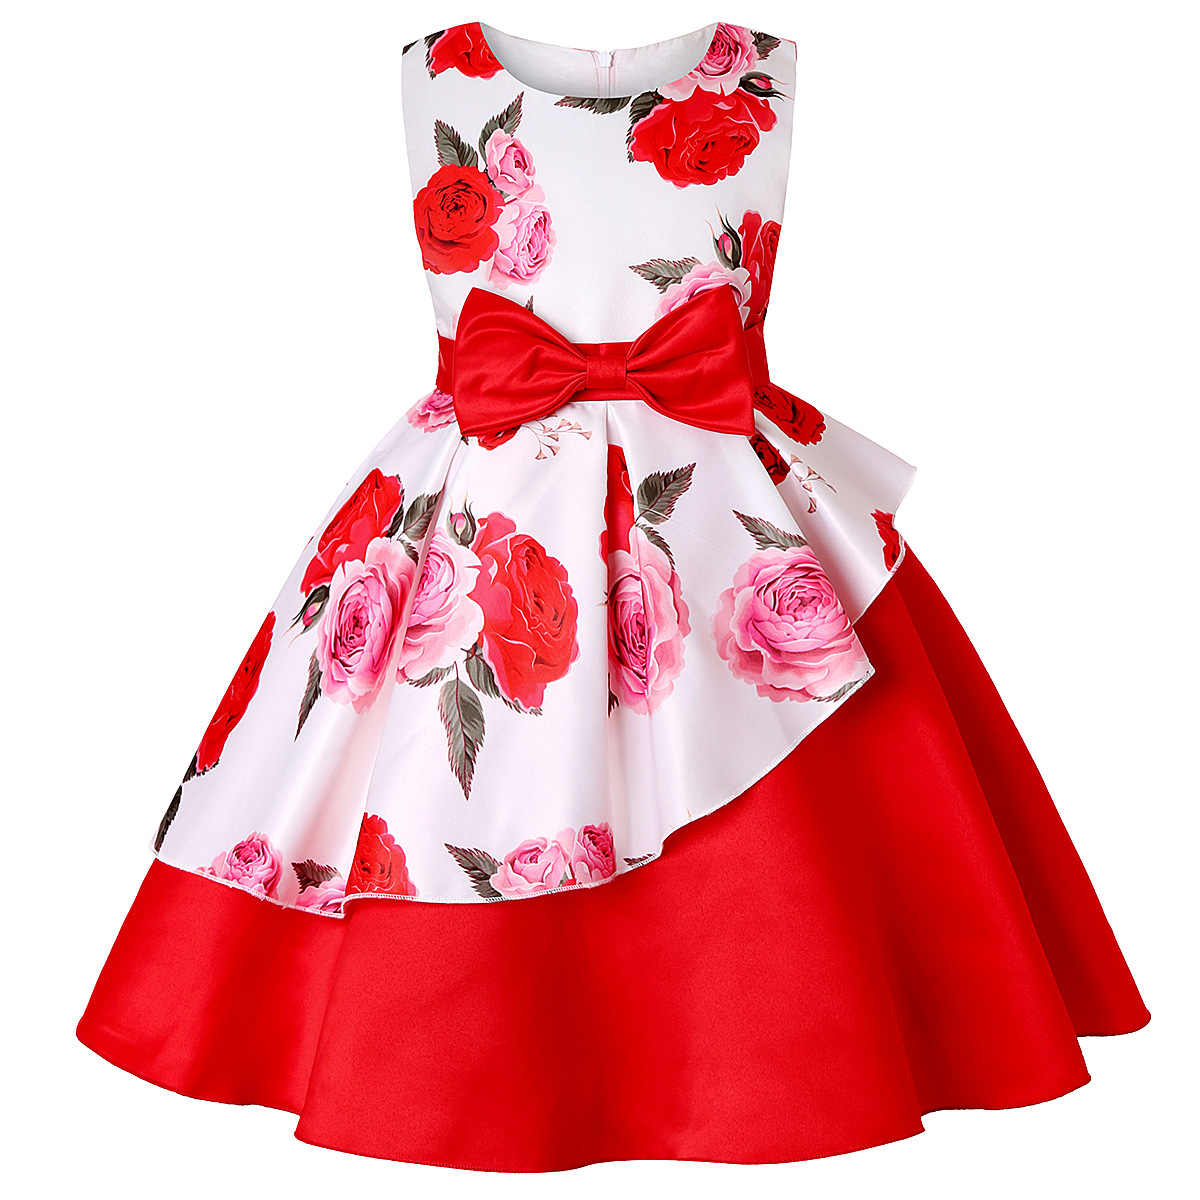 Baby Kids Flower Pretty Birthday Dresses Children Clothing Toddler Wedding  Princess Dress Eveving Party Costume Clothes With Bow